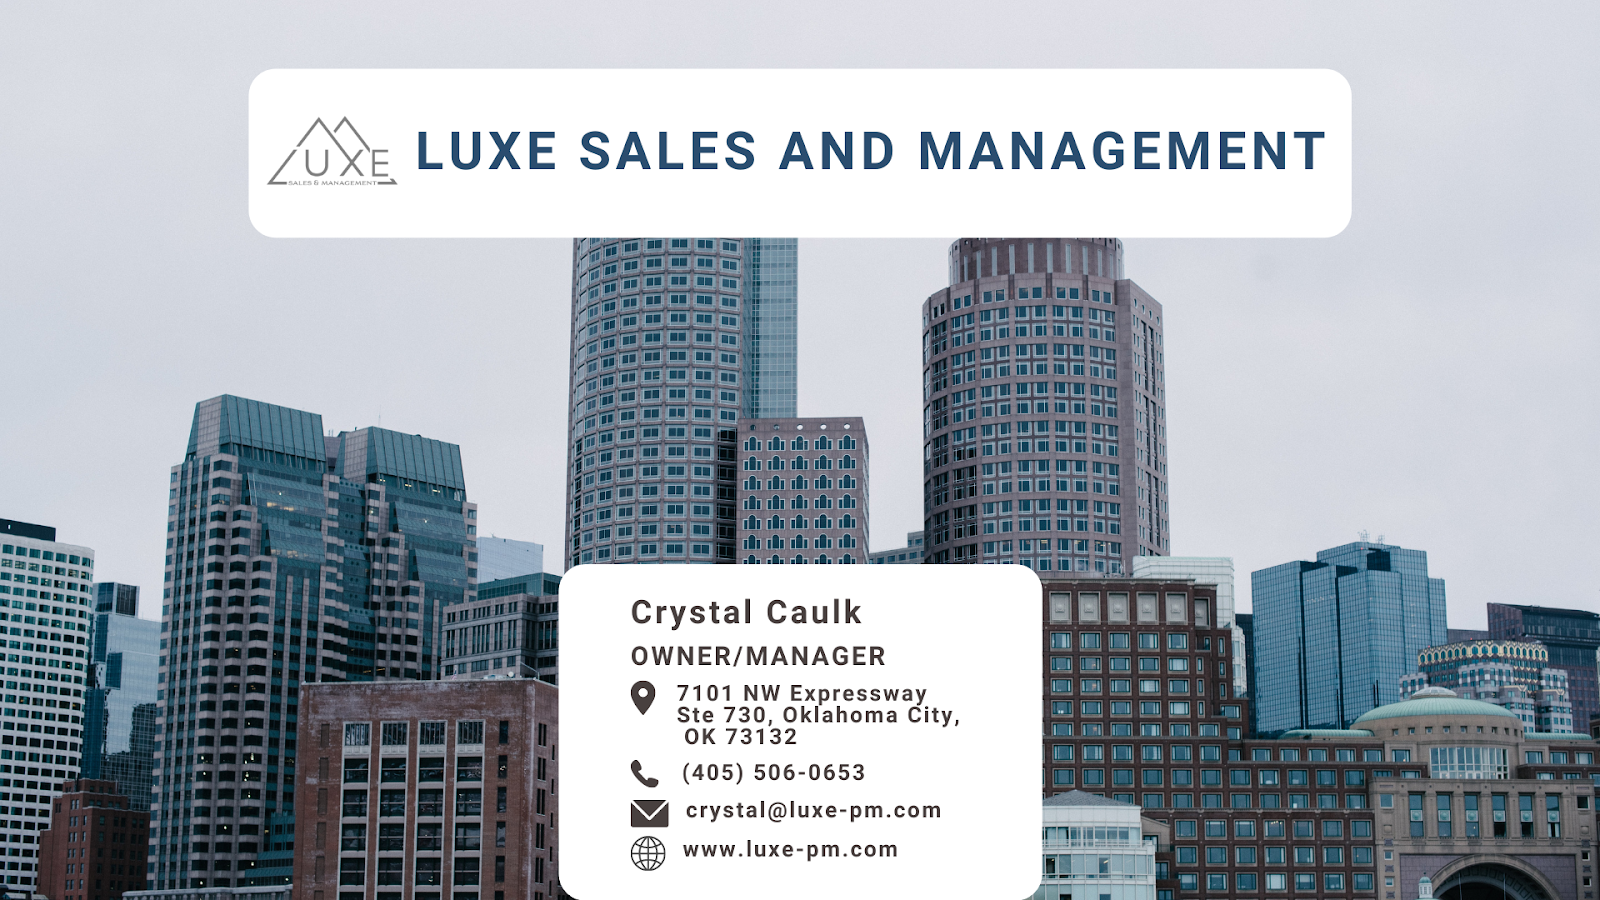 LUXE Sales and Management